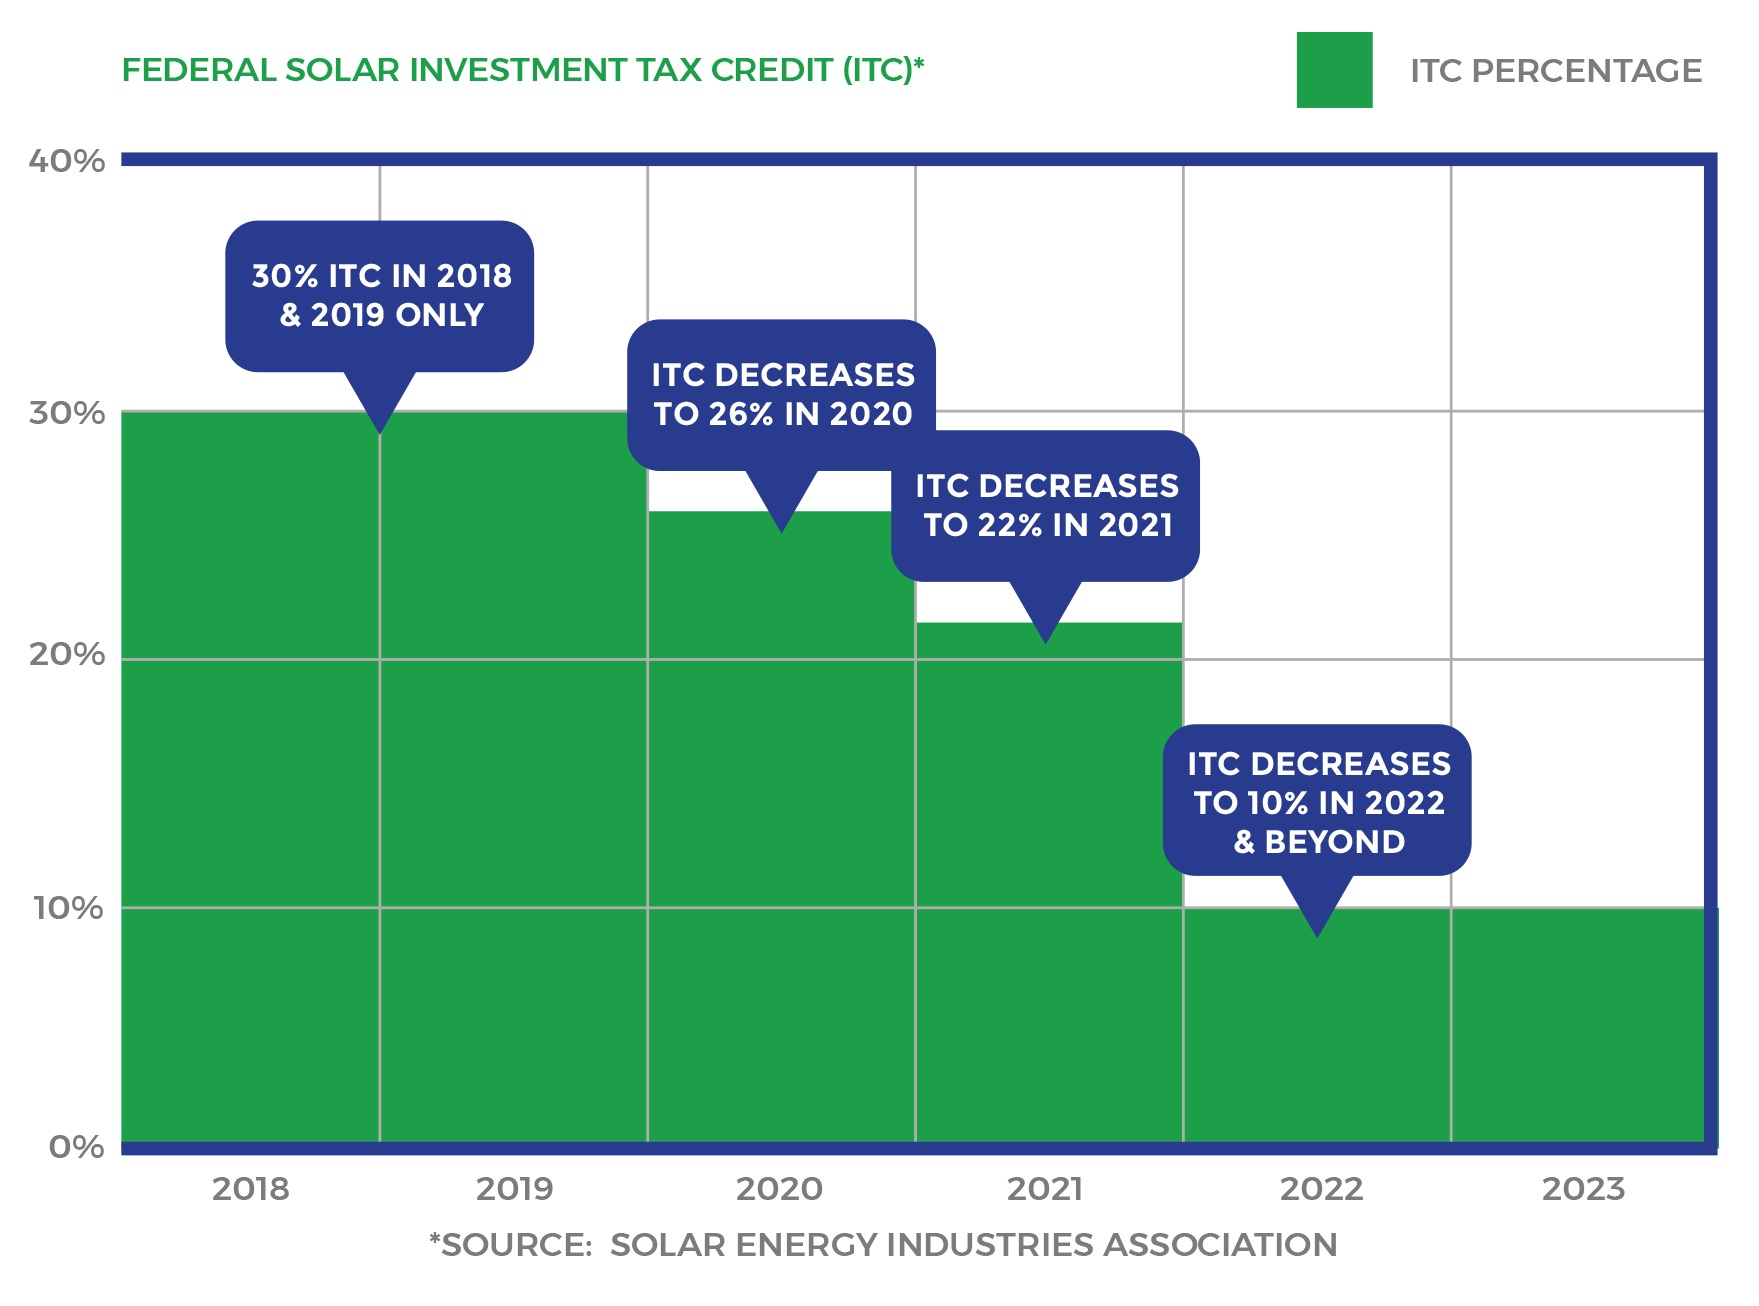 Why solar now? - For 2018 and 2019 only, there is a 30% federal investment tax credit (ITC). Starting in 2020, this credit will decrease over the course of three years to 10%. By partnering with Sun FundED now, you can maximize your investment and make the biggest impact on your school.